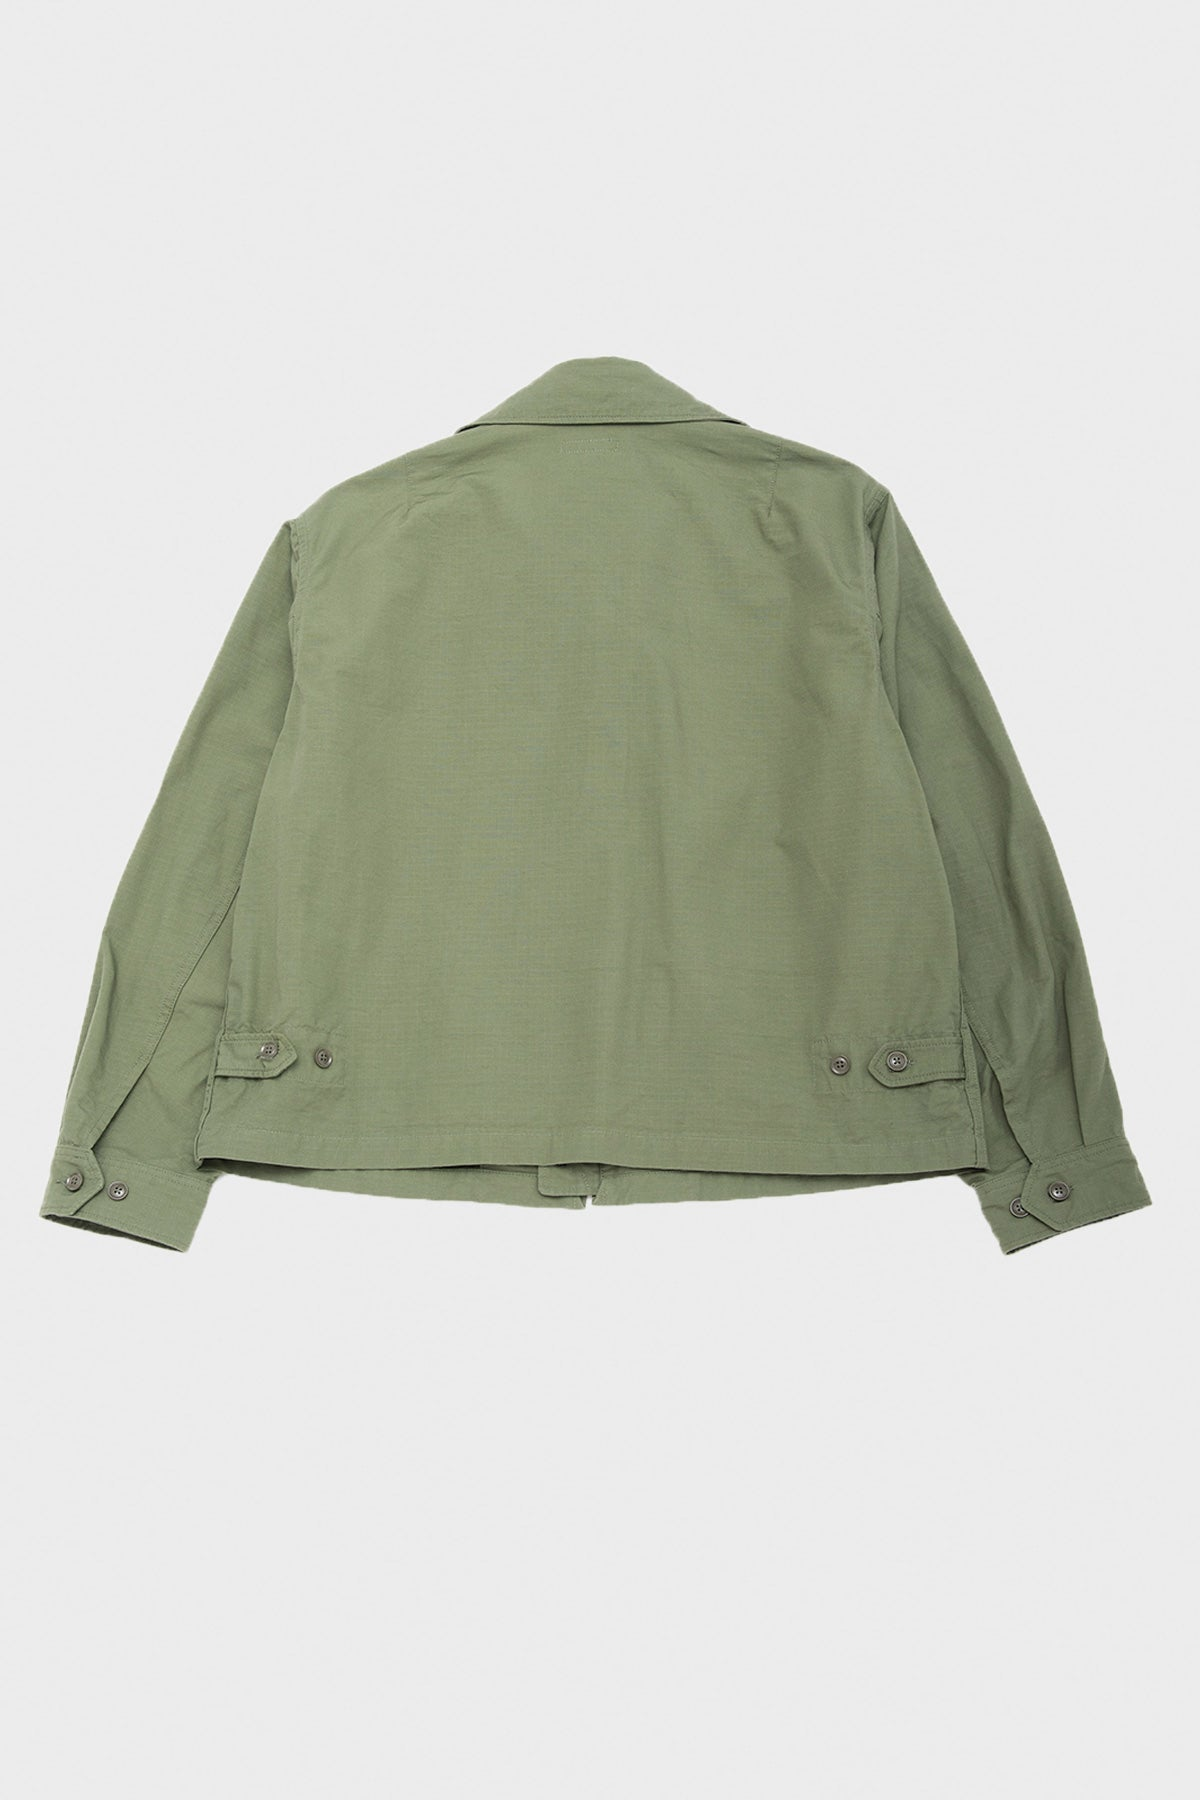 Engineered Garments - Claighton Jacket - Olive Cotton Ripstop - Canoe Club